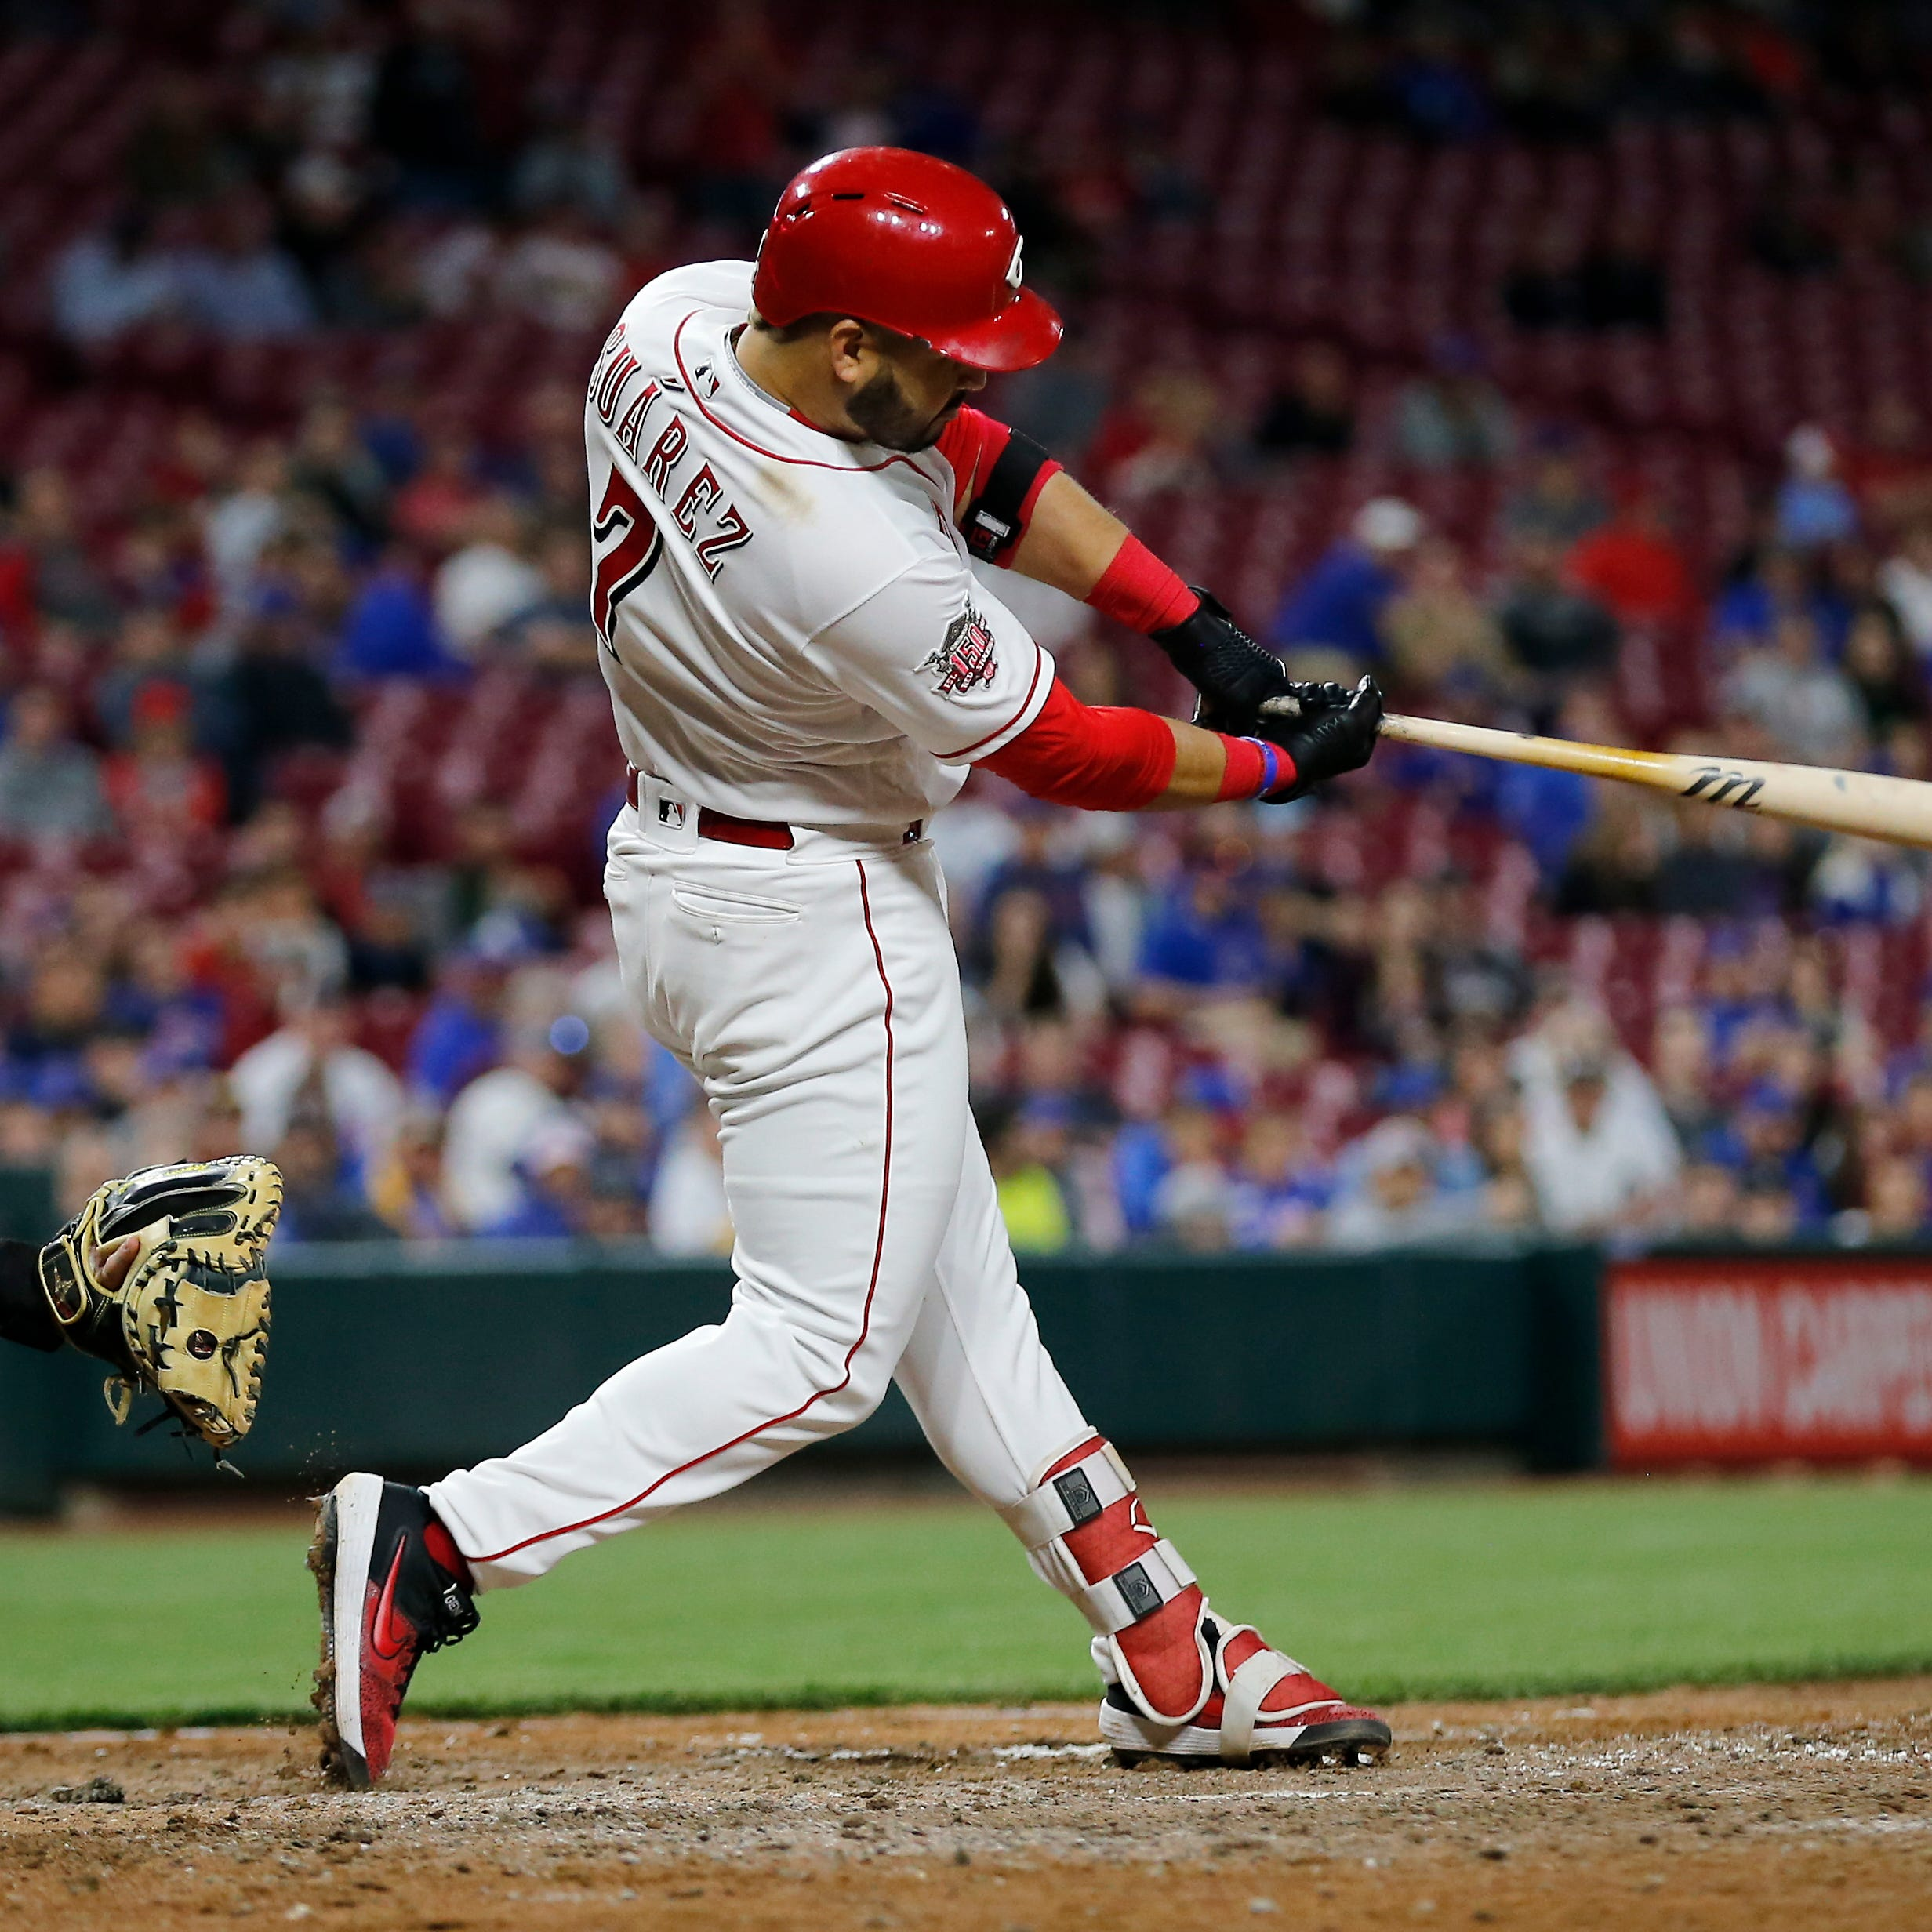 Cincinnati Reds rally – twice – in series opener to beat Chicago Cubs 6-5 at Wrigley Field